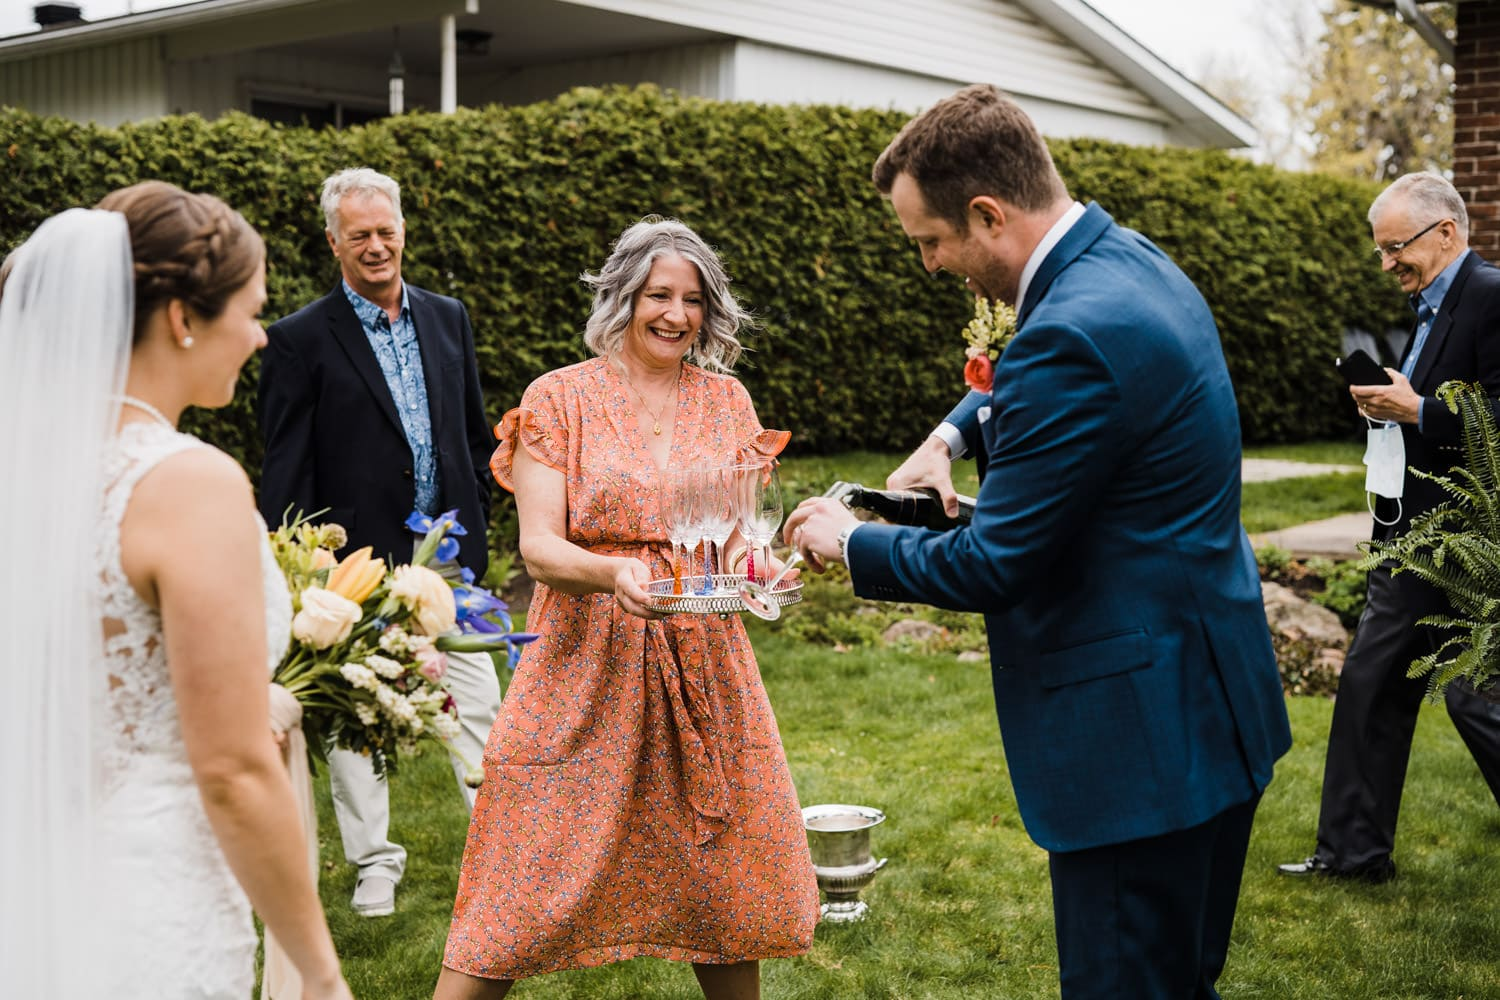 couple pours champagne to celebrate intimate backyard ceremony